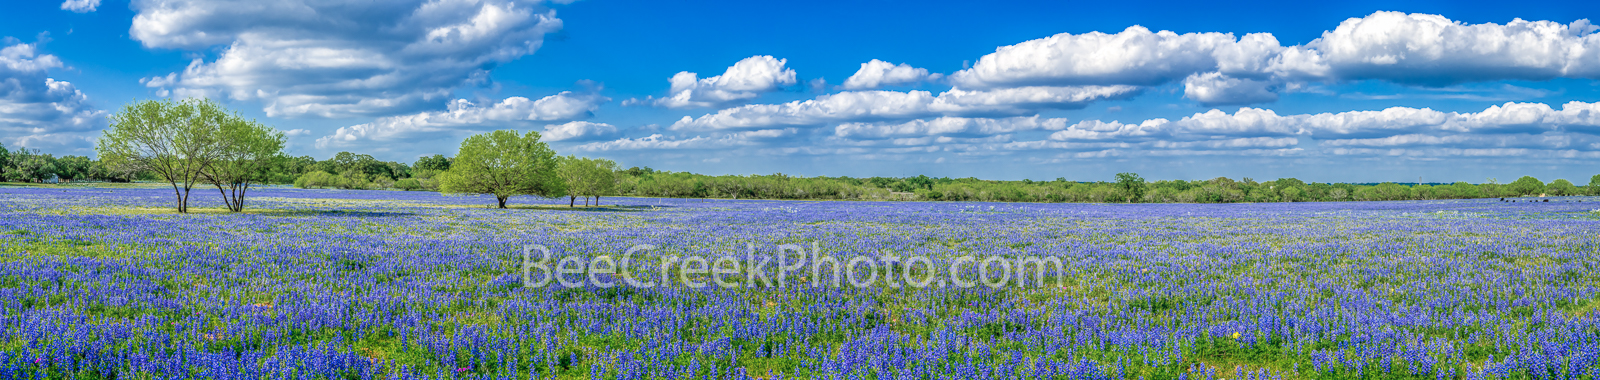 bluebonnets, mesquite trees,  pano, panorama, ranch, poppies, texas wildflowers, San Antonio, southern Texas, green, blue, field, south texas, texas wildflowers,, photo